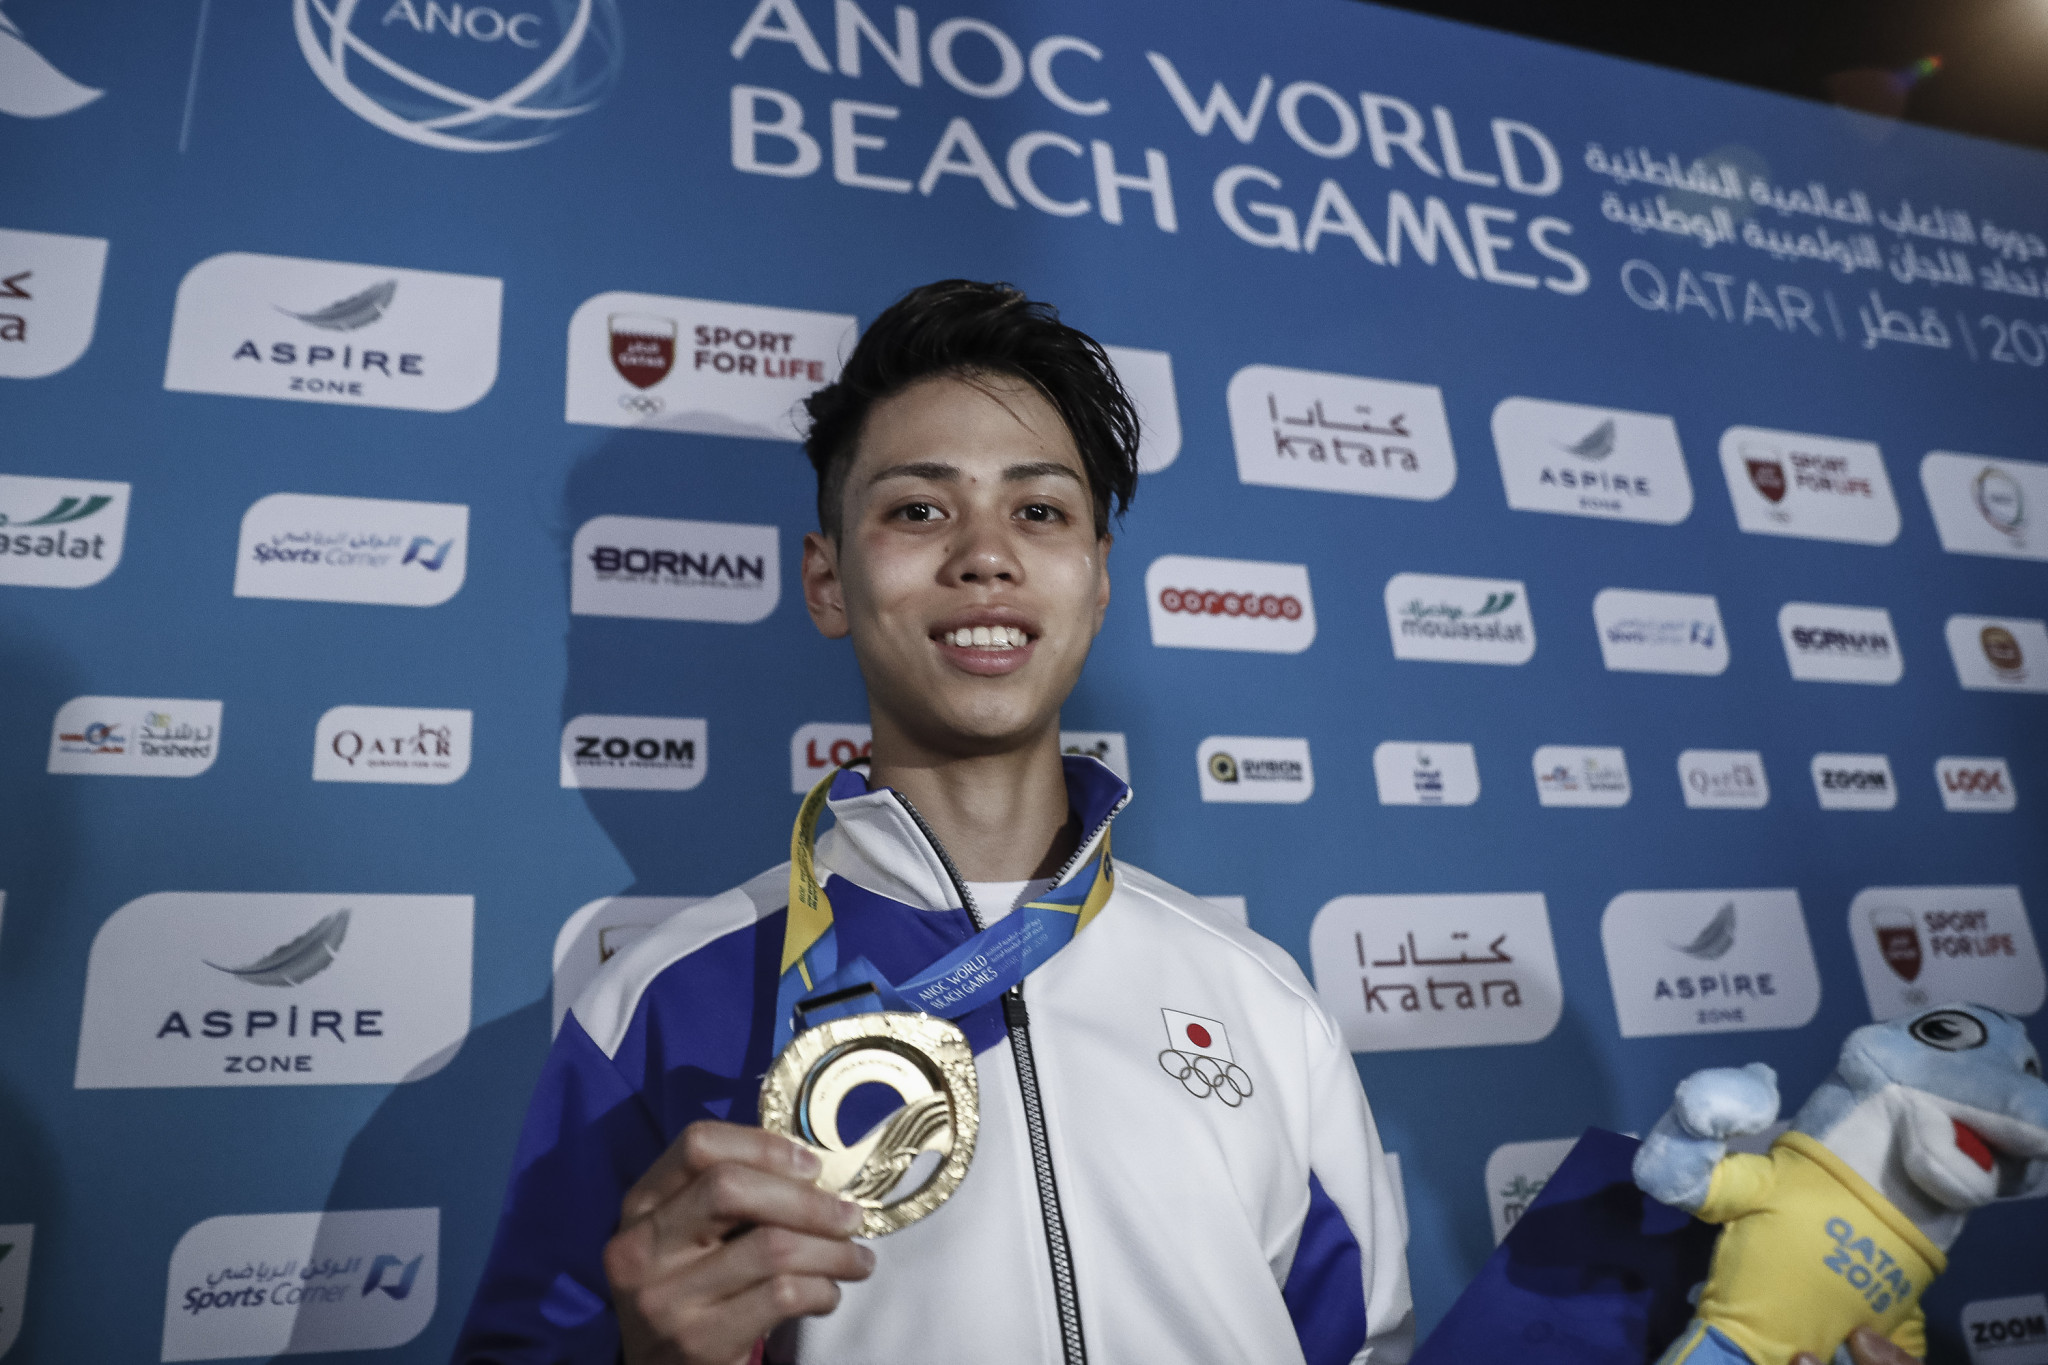 Kai Harada made it a Japanese double in the bouldering ©ANOC